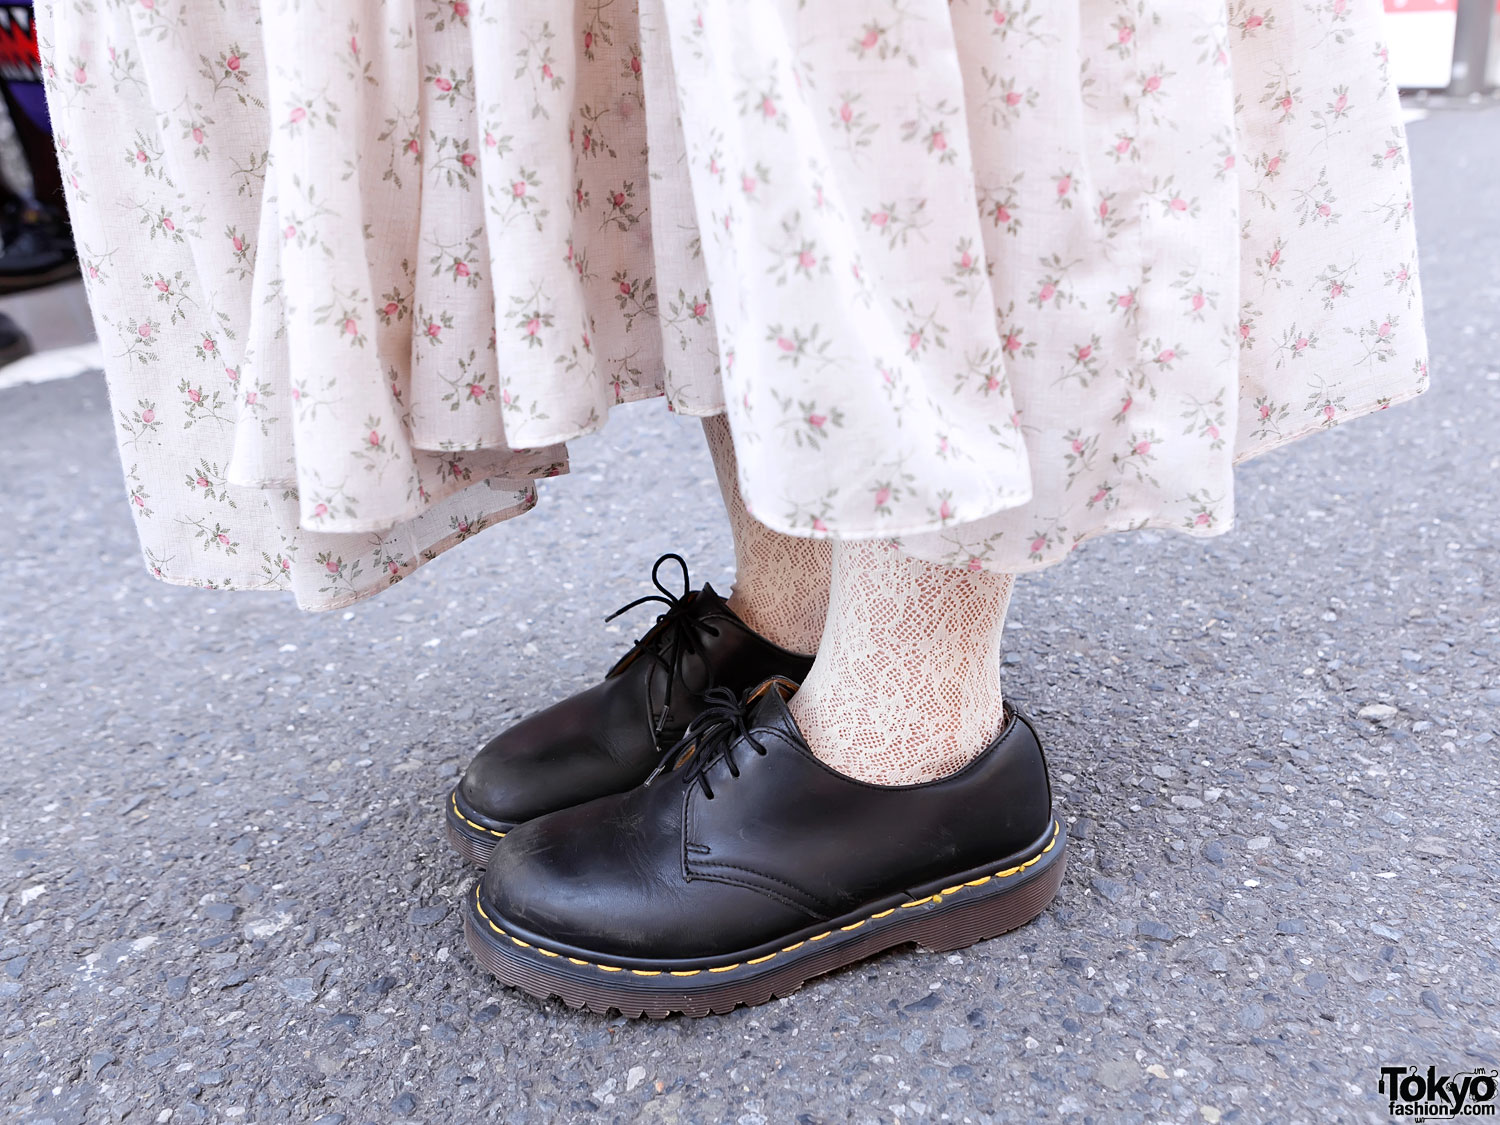 Long flower dress dr martens tokyo fashion news long flower dress dr martens mightylinksfo Image collections